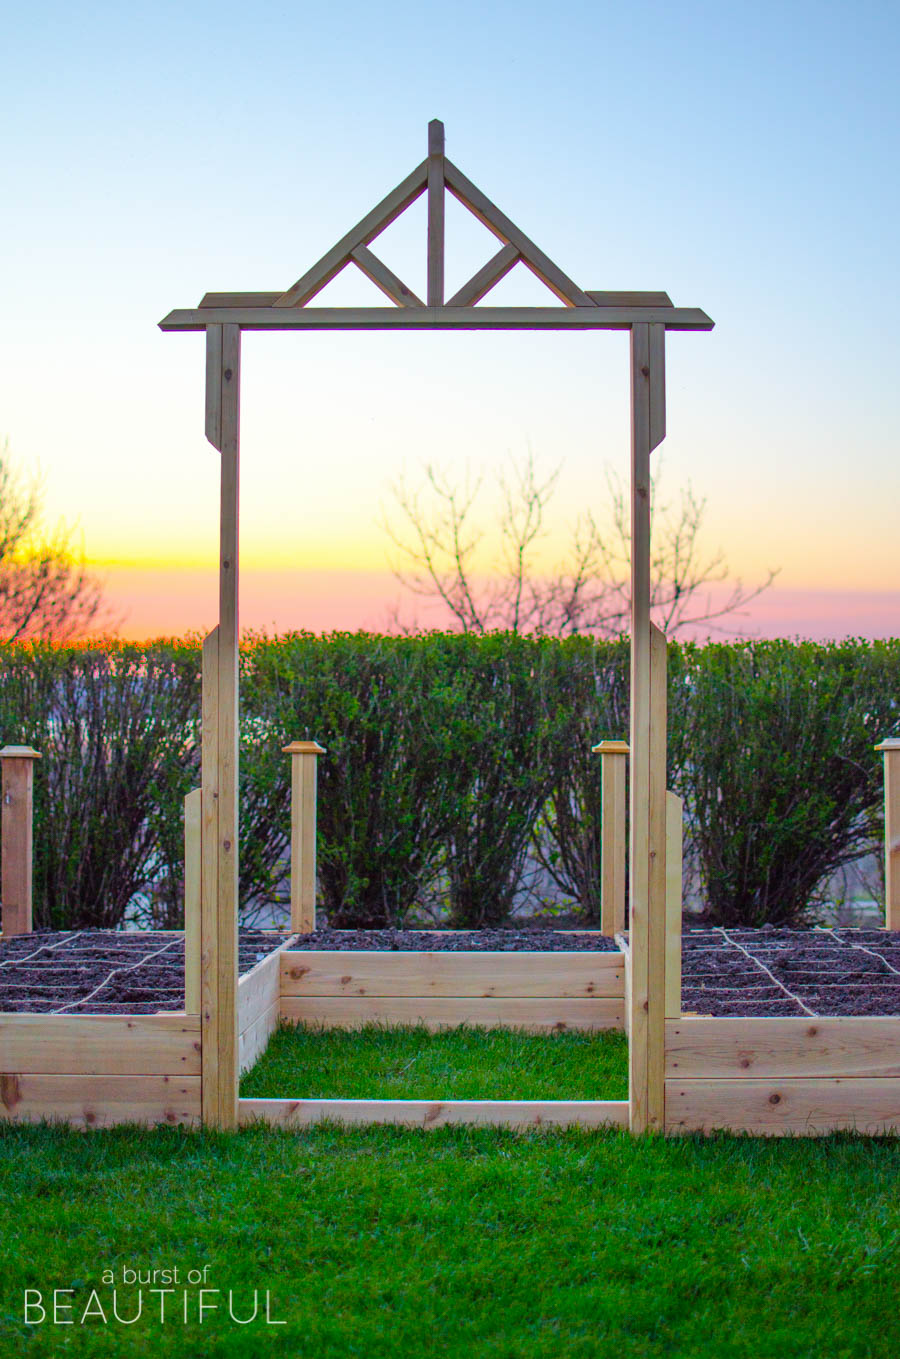 Build your own raised square-foot garden with these simple plans from A Burst of Beautiful